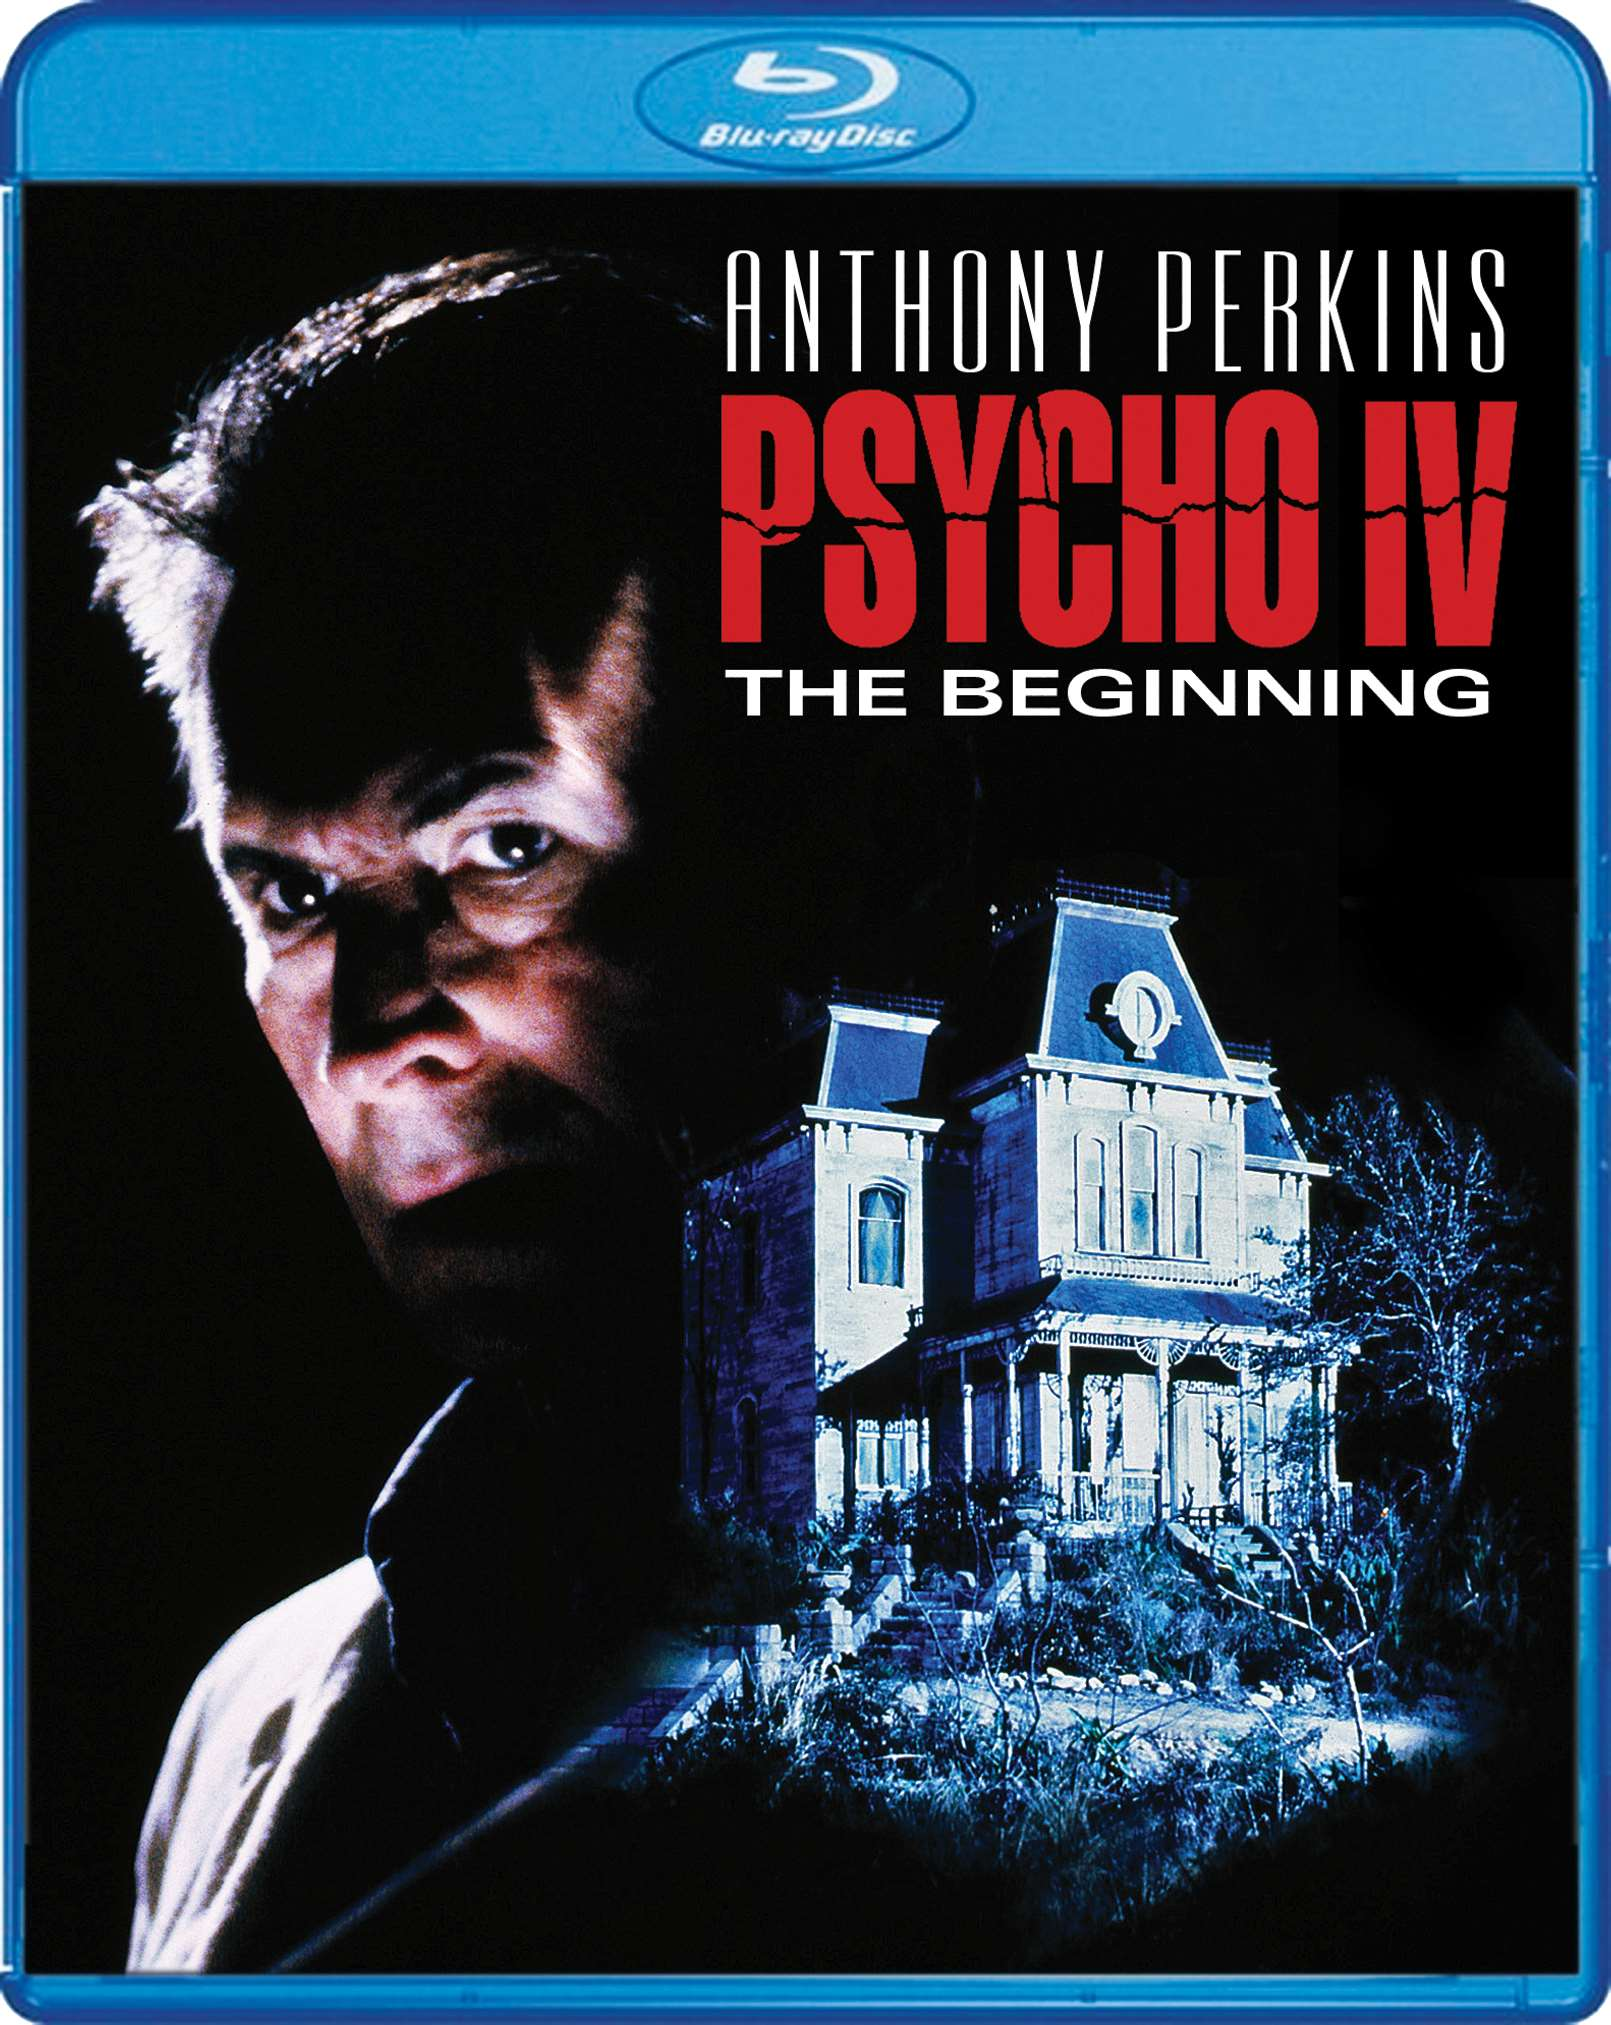 Psycho_IV_The_Beginning_Cover_Art